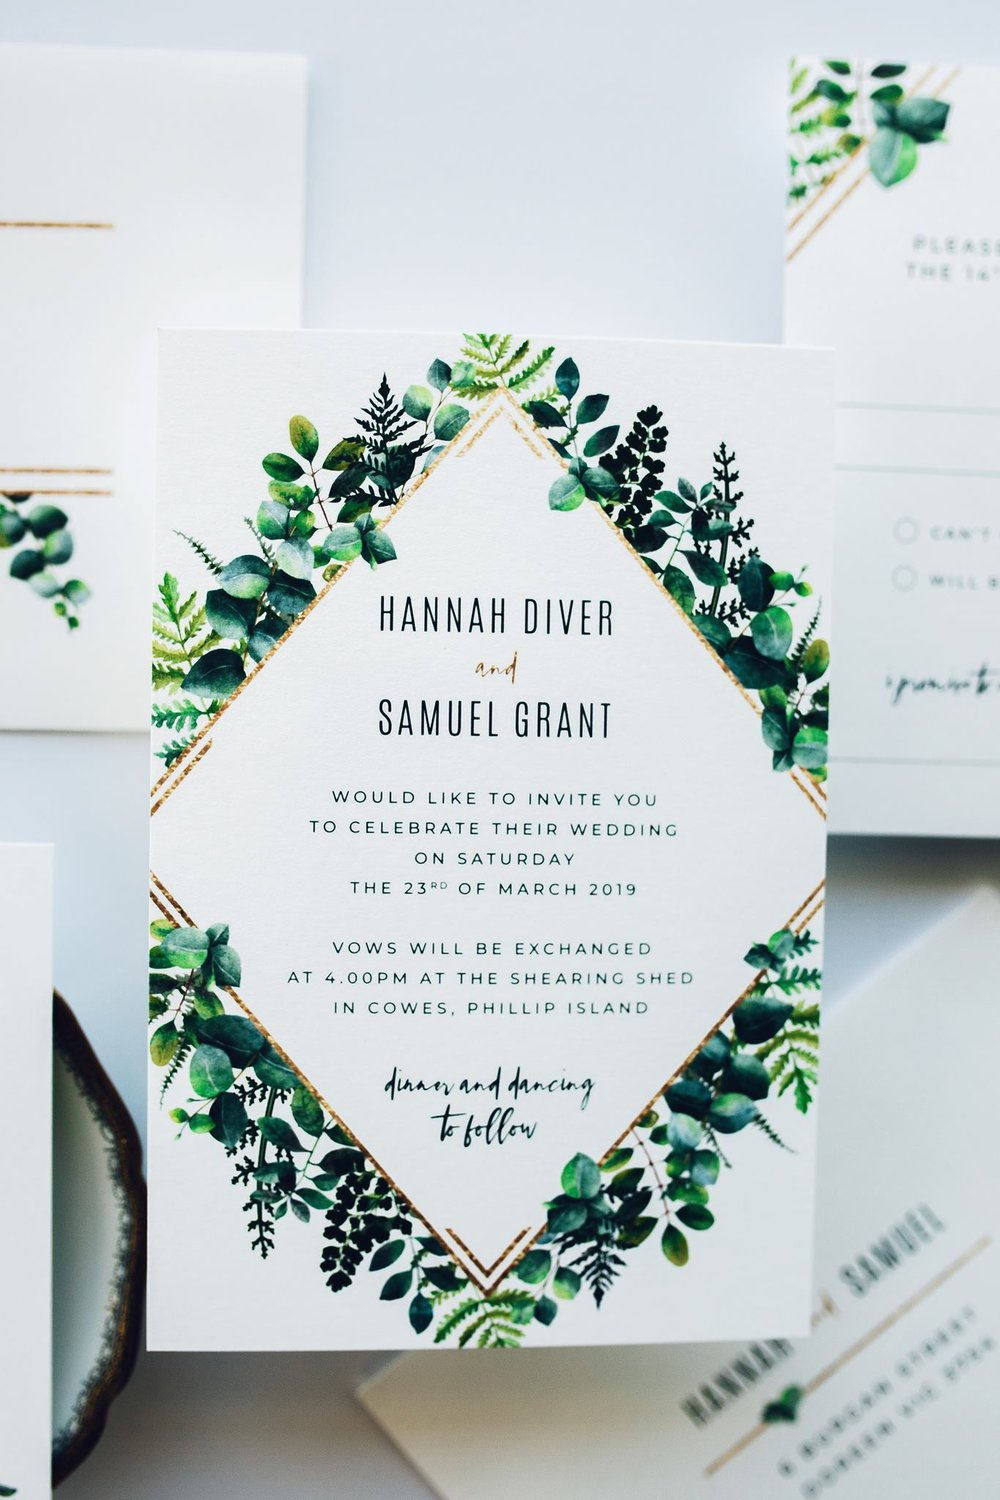 Our new 'Greenery and Gold' invitation.